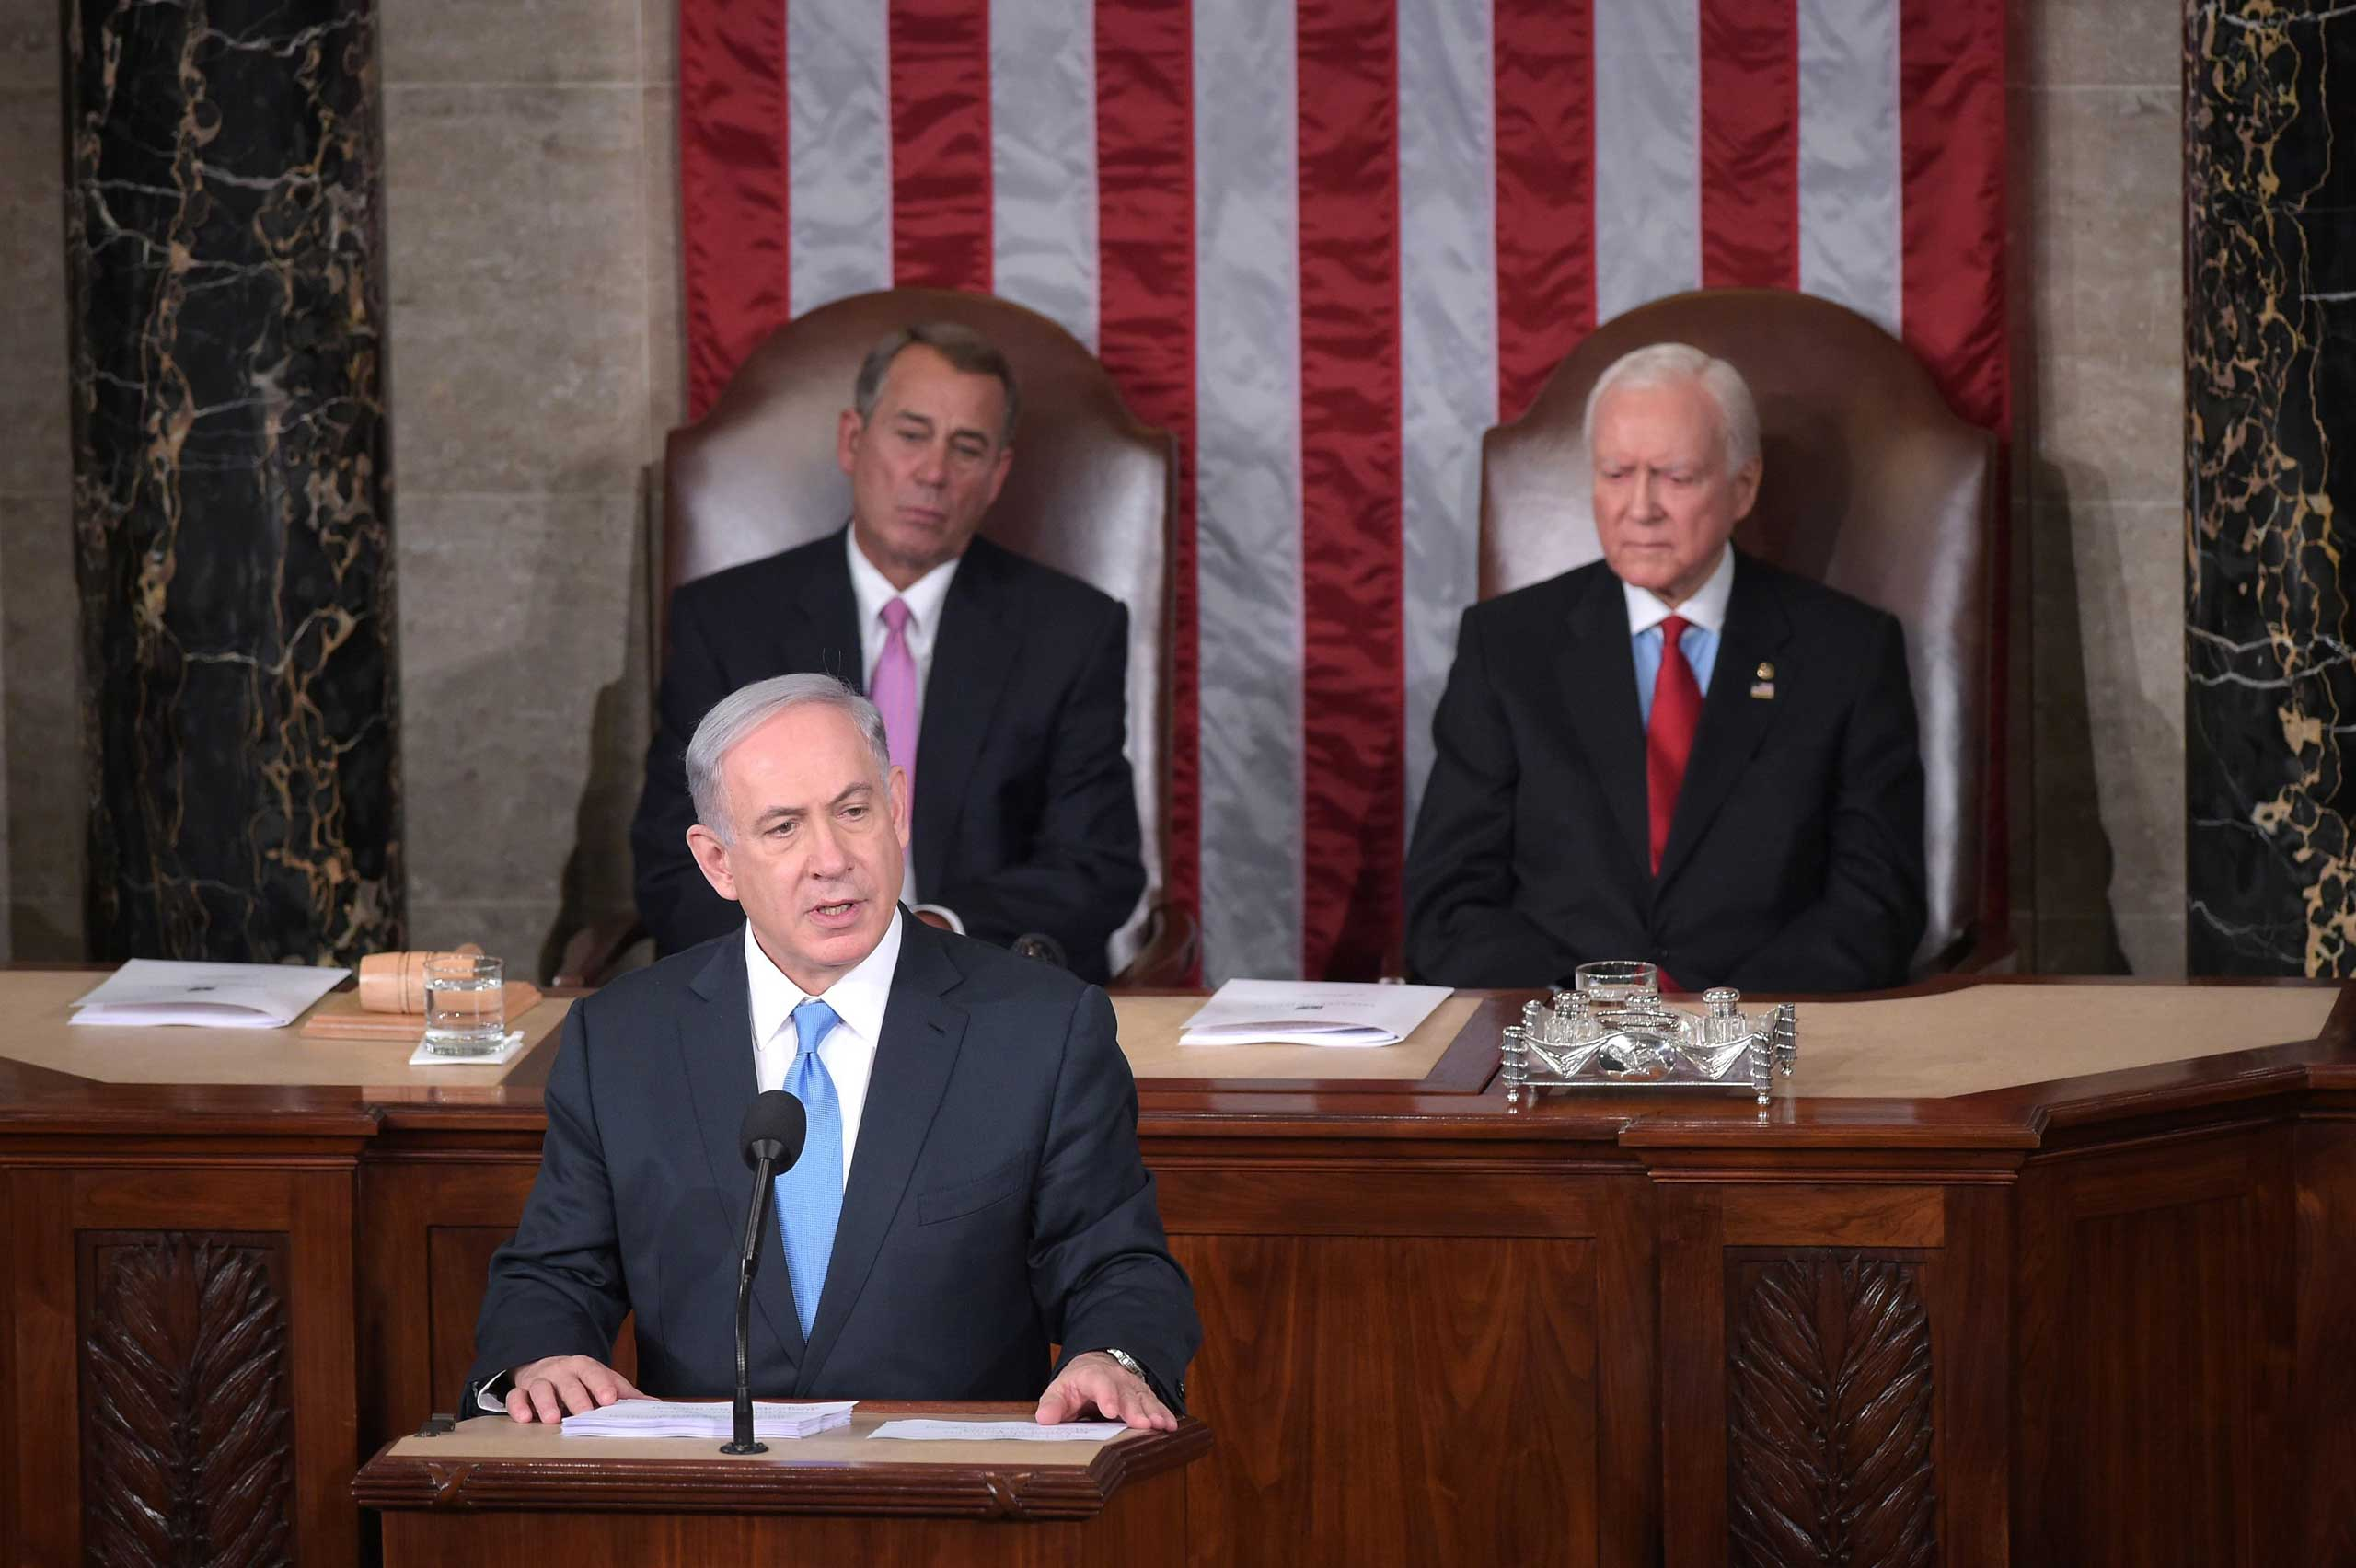 <b>Benjamin Netanyahu</b>, Israeli Prime Minister, addressed Congress on March 3, 2015, urging a stop to the Iran nuclear talks. His policy positions are often controversial, but  he enjoys a privileged position when it comes to visiting the legislature, this was his third visit to Congress.